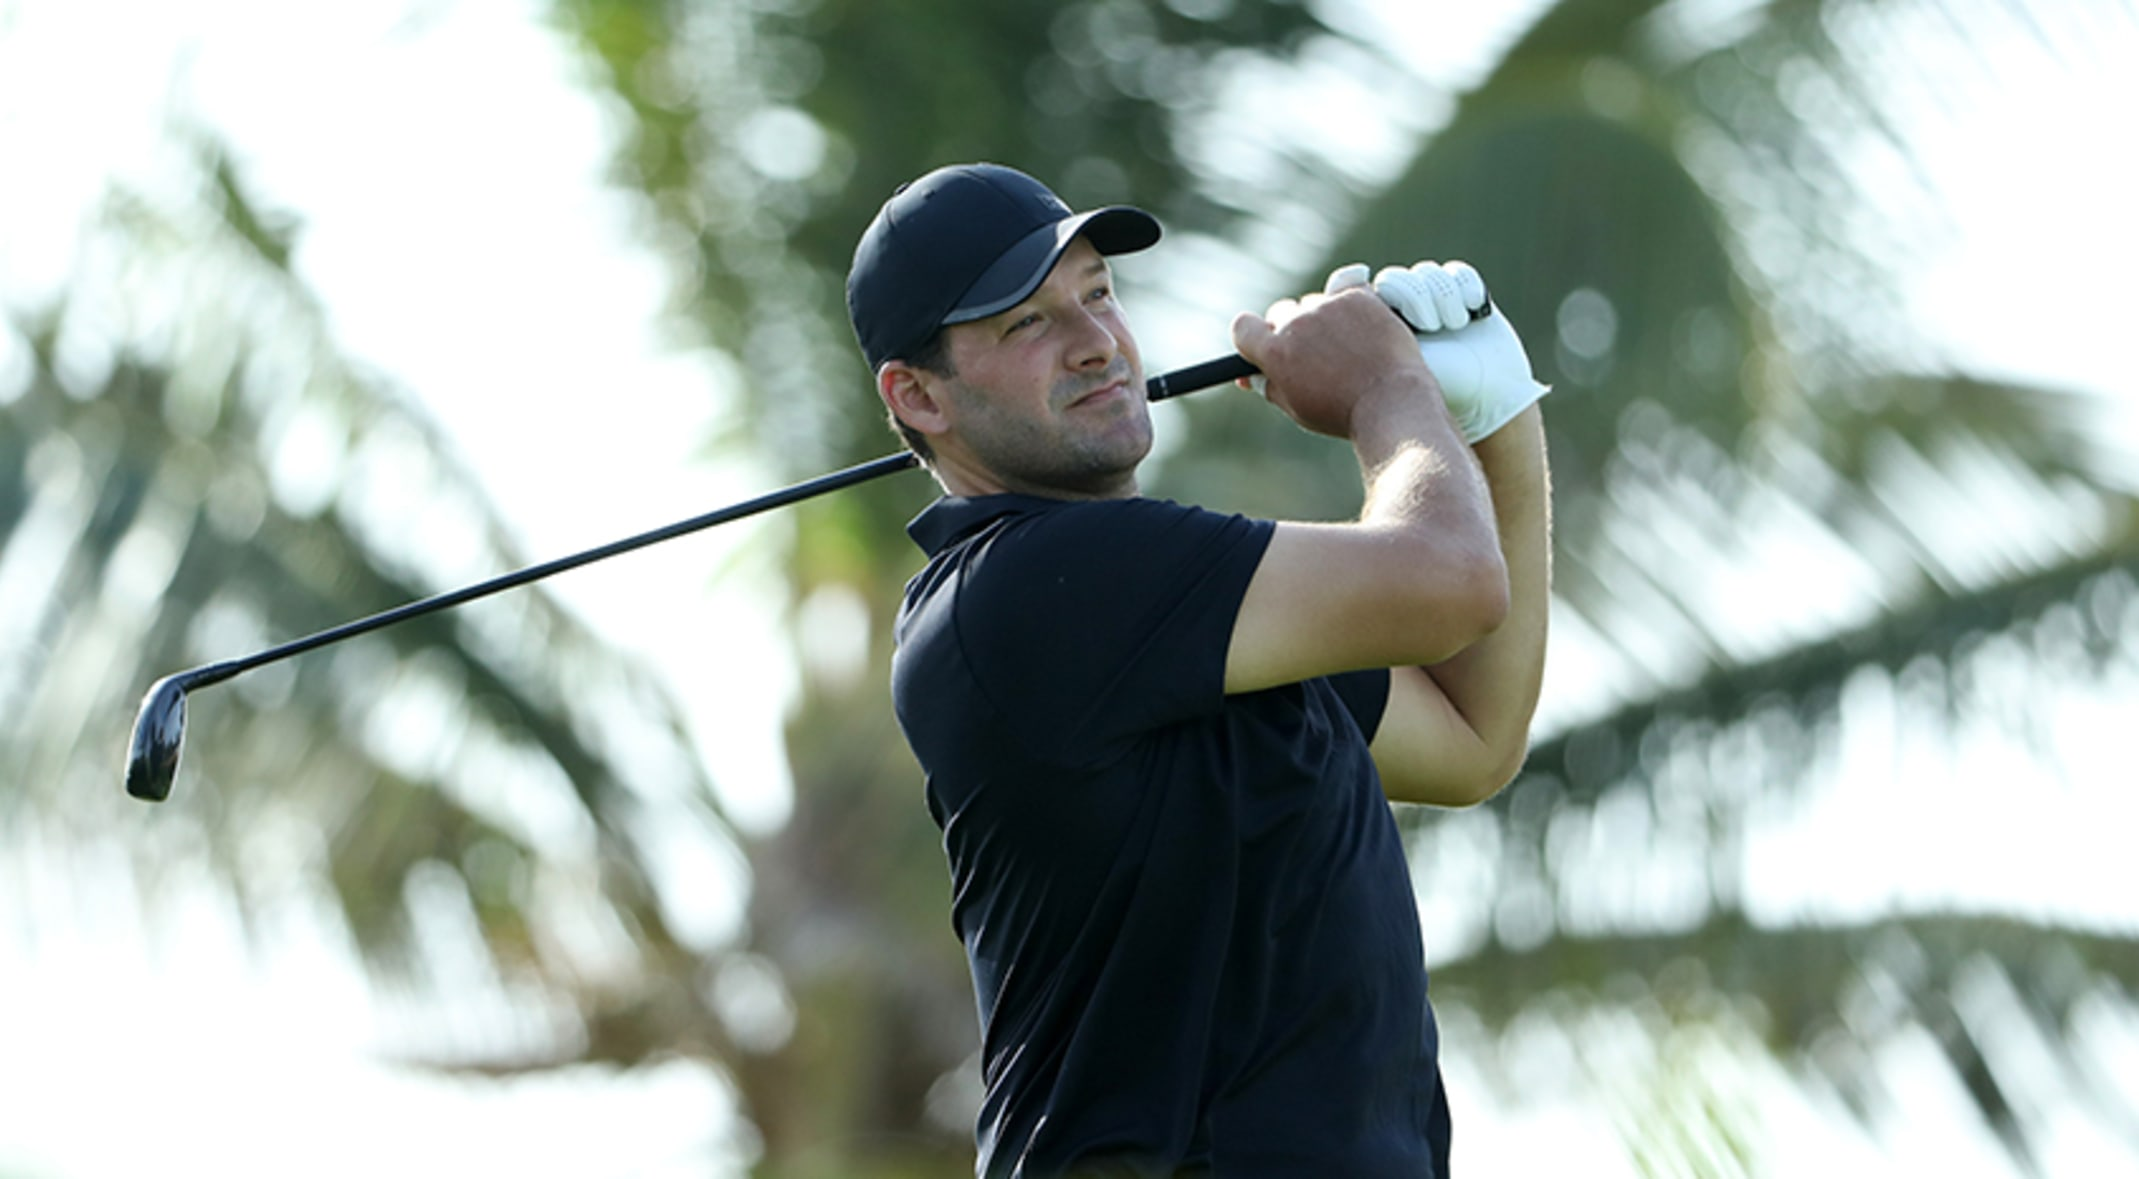 b9cda8827d7 Tony Romo returns to Punta Cana looking to make his first cut in his second  PGA